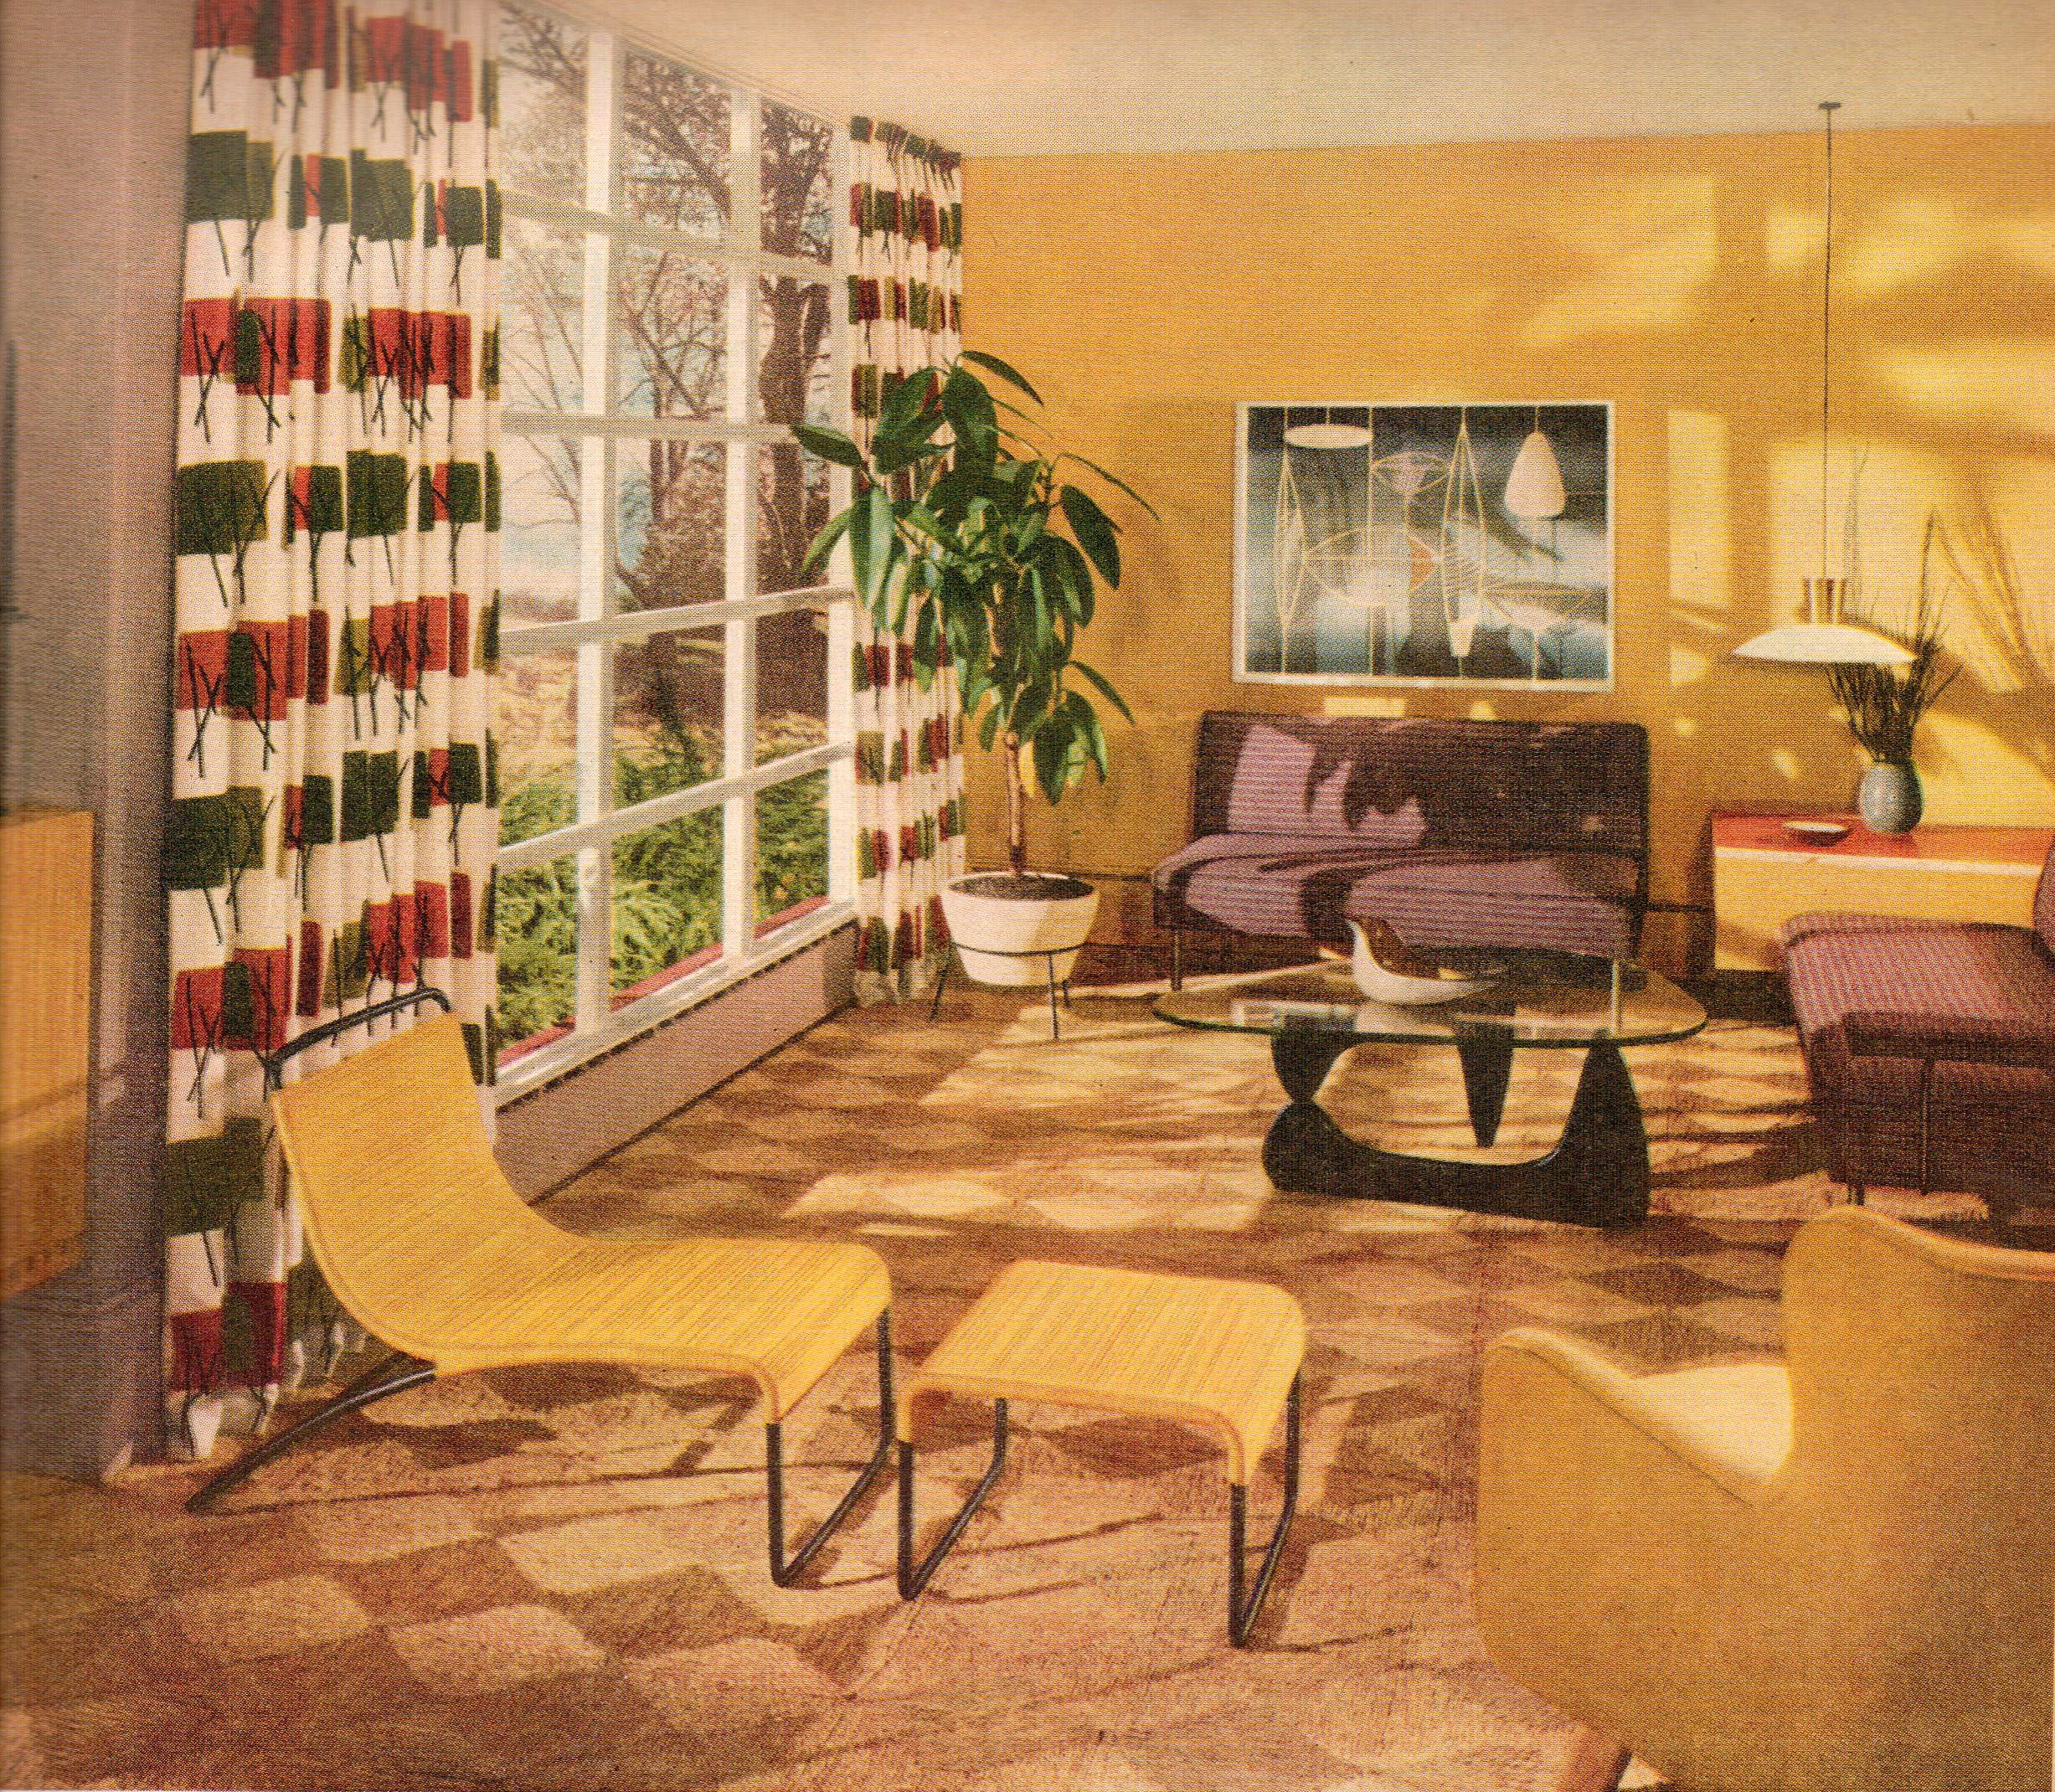 Retro Living Room Ideas And Decor Inspirations For The: Yellow Mid Century Modern Living Room